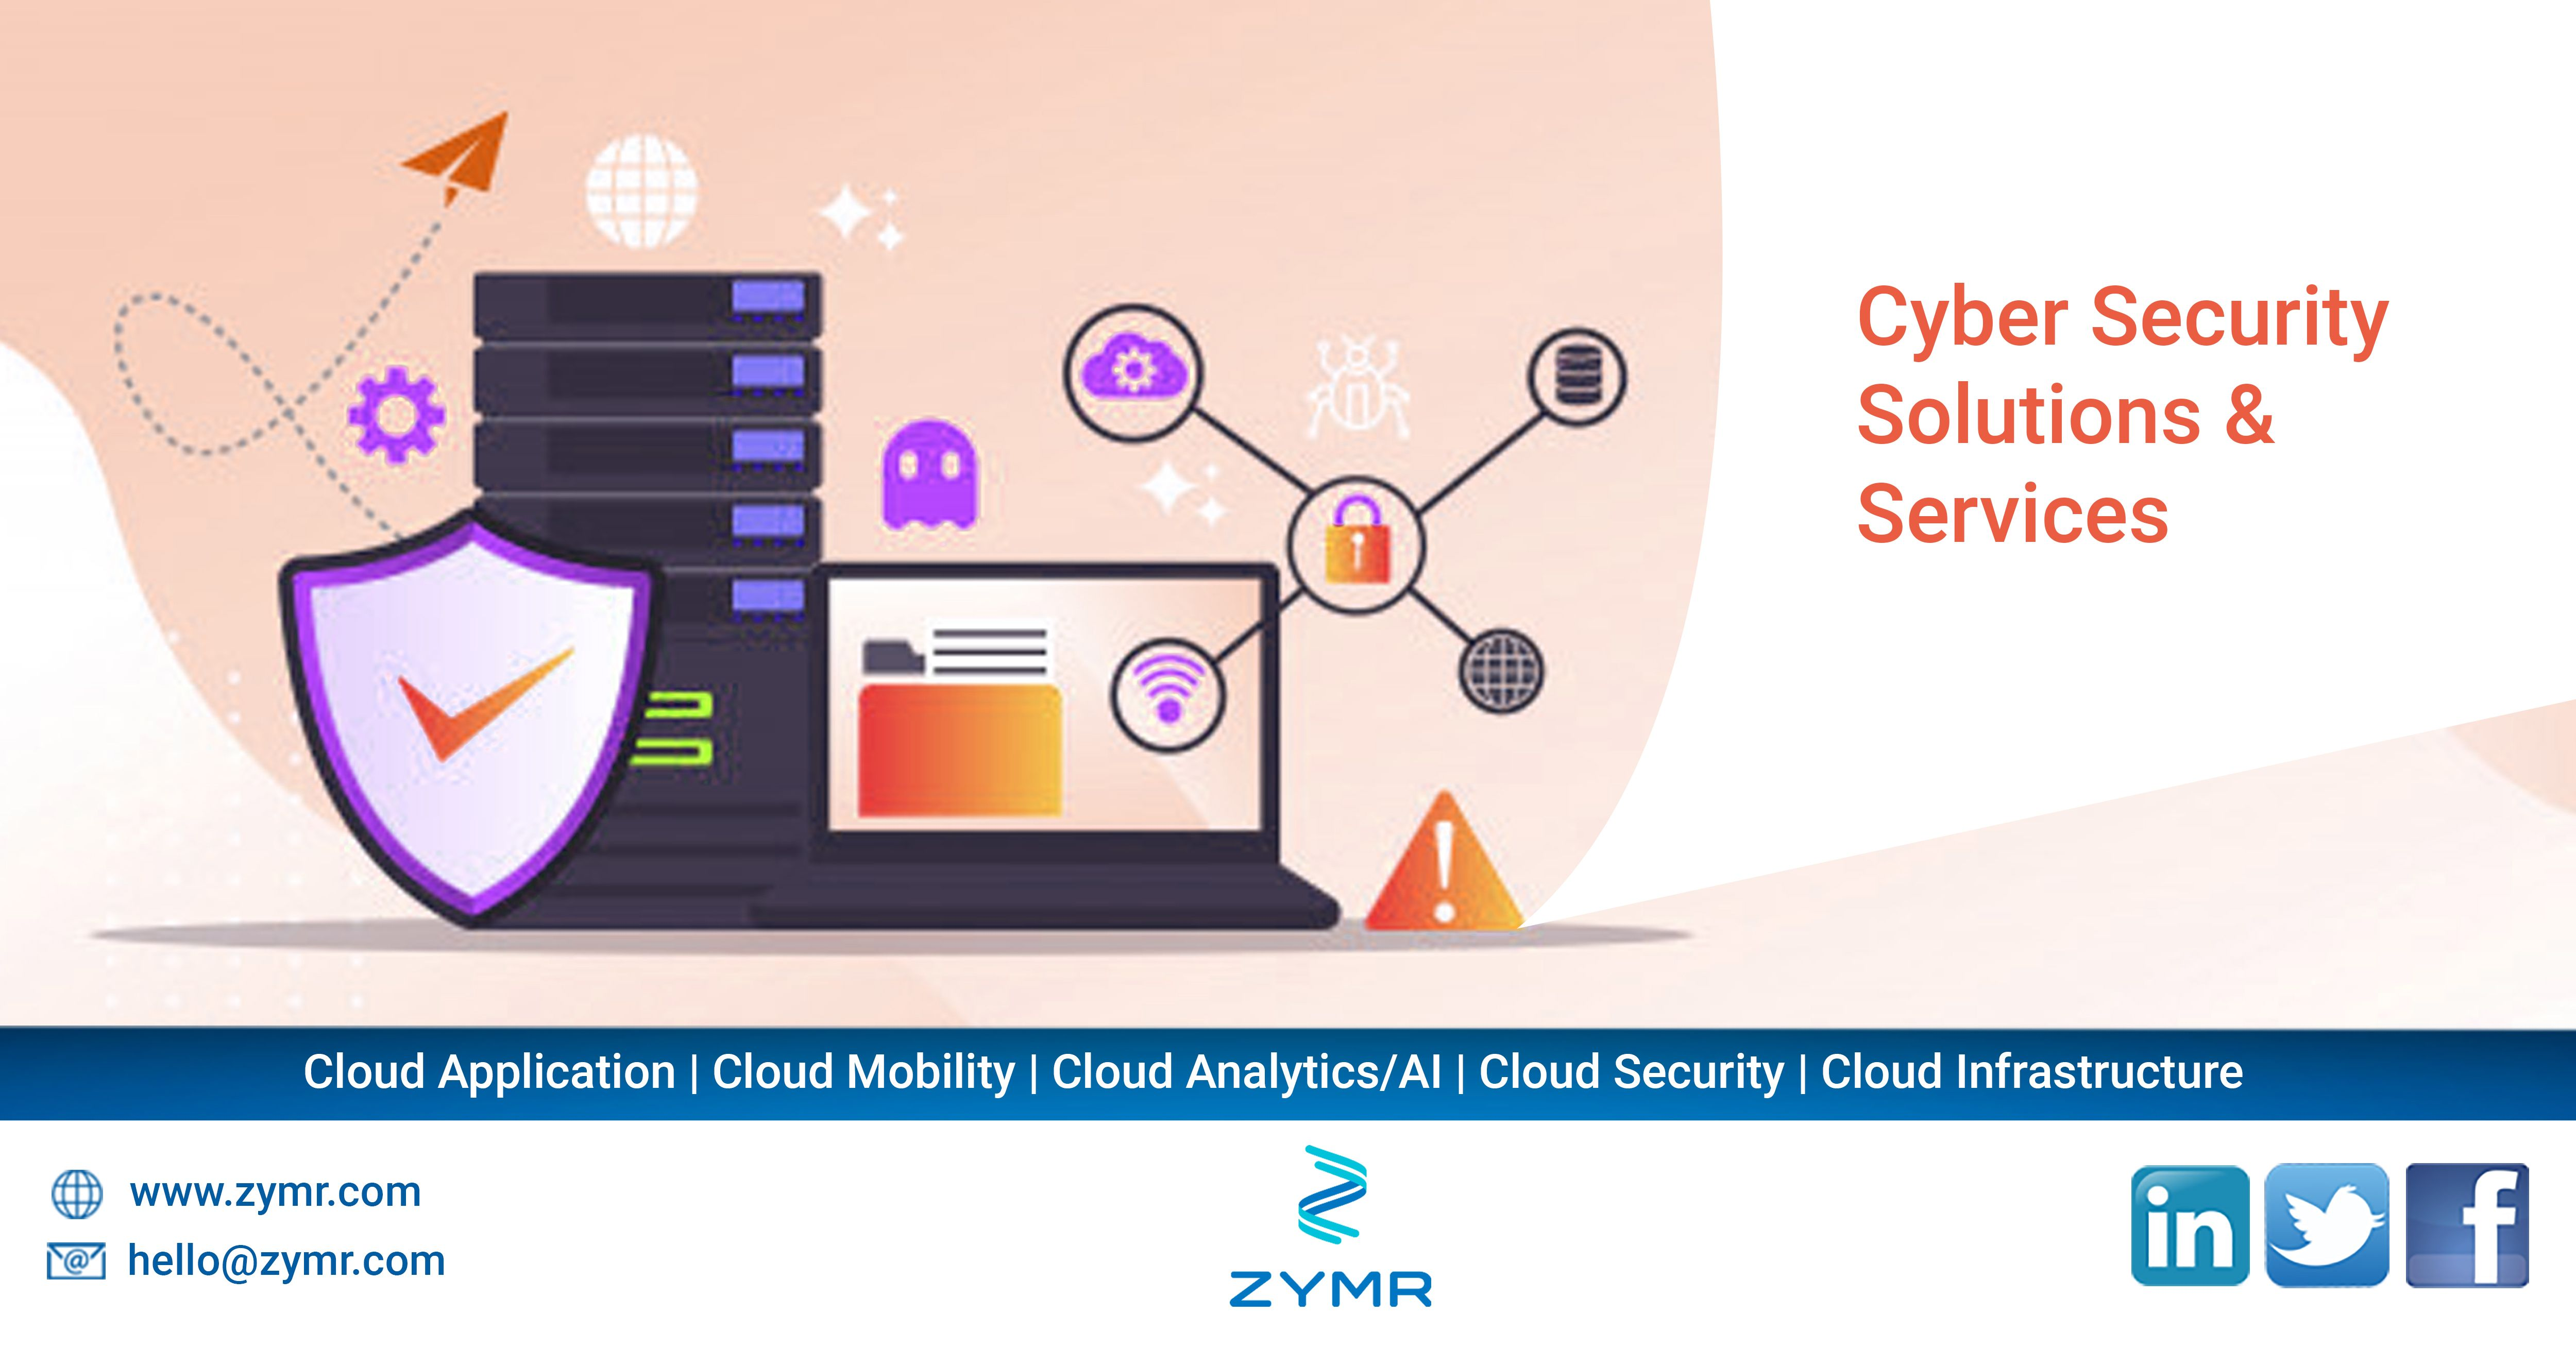 Cyber security solutions and services security solutions